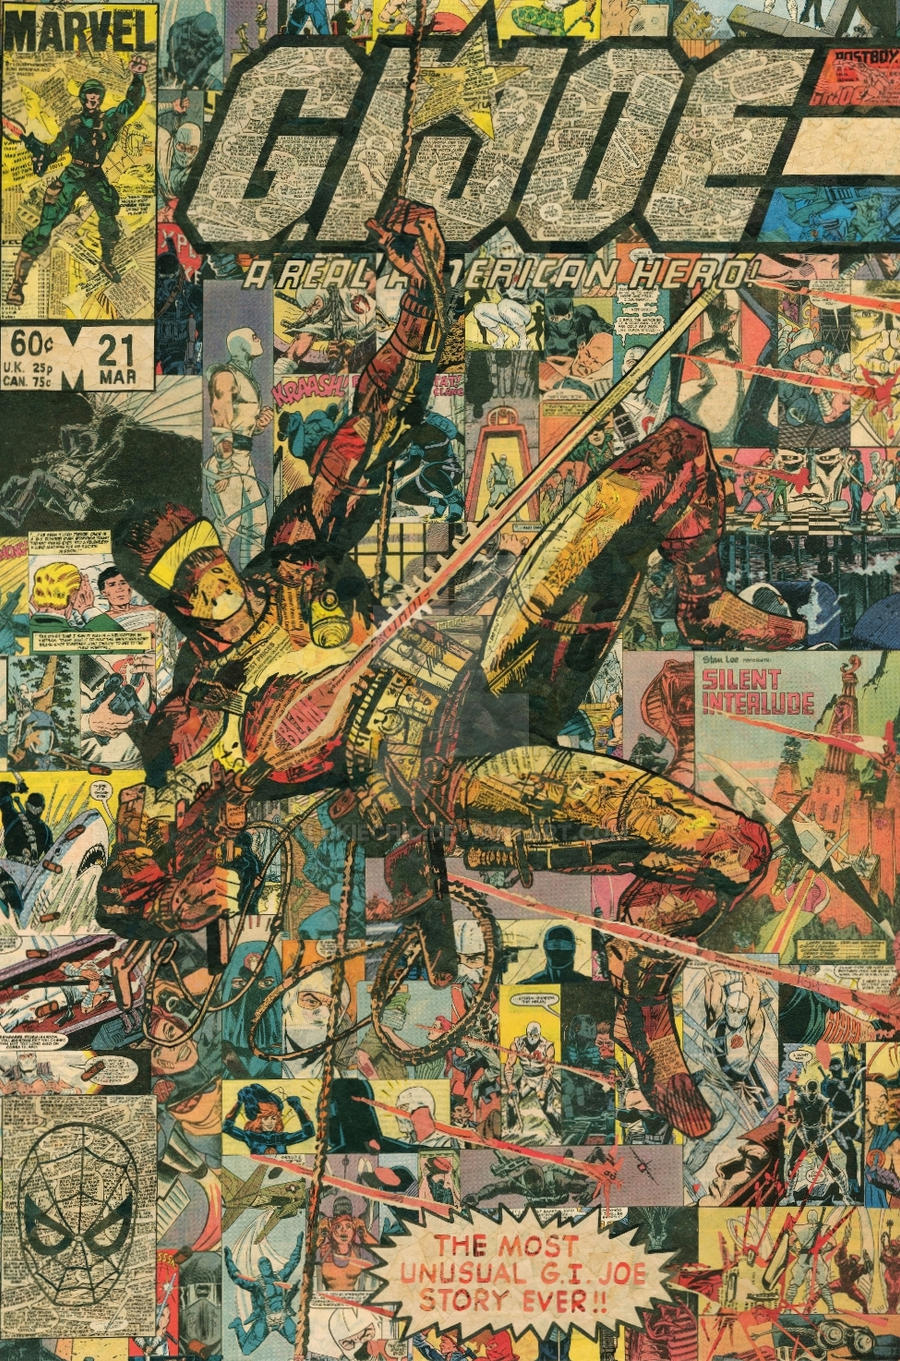 Comic Book Cover Collage : G i joe silent issue comic collage by flukiechic on